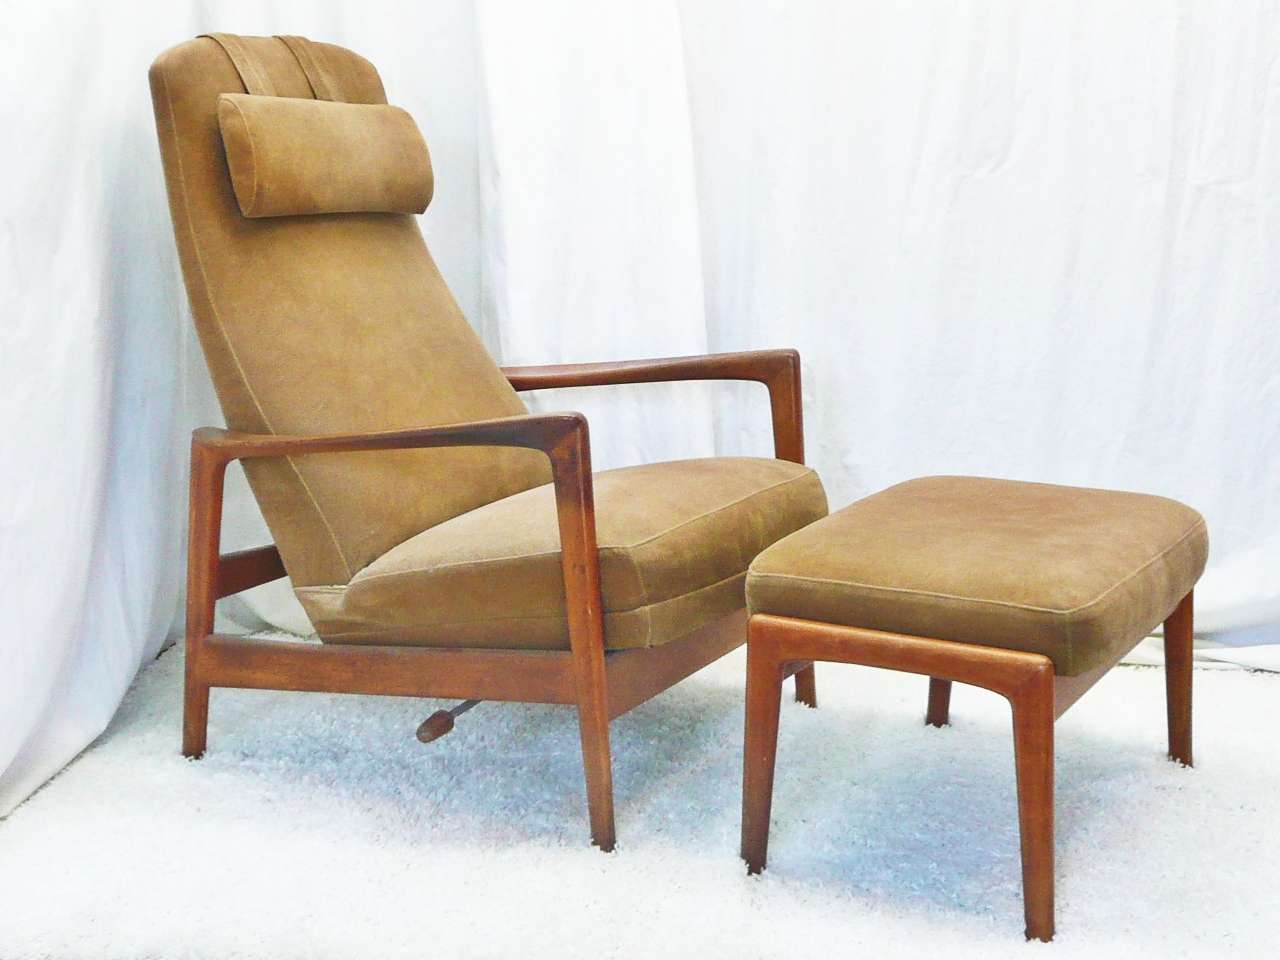 A Mid Century Modern Teak Lounge Chair And Ottoman